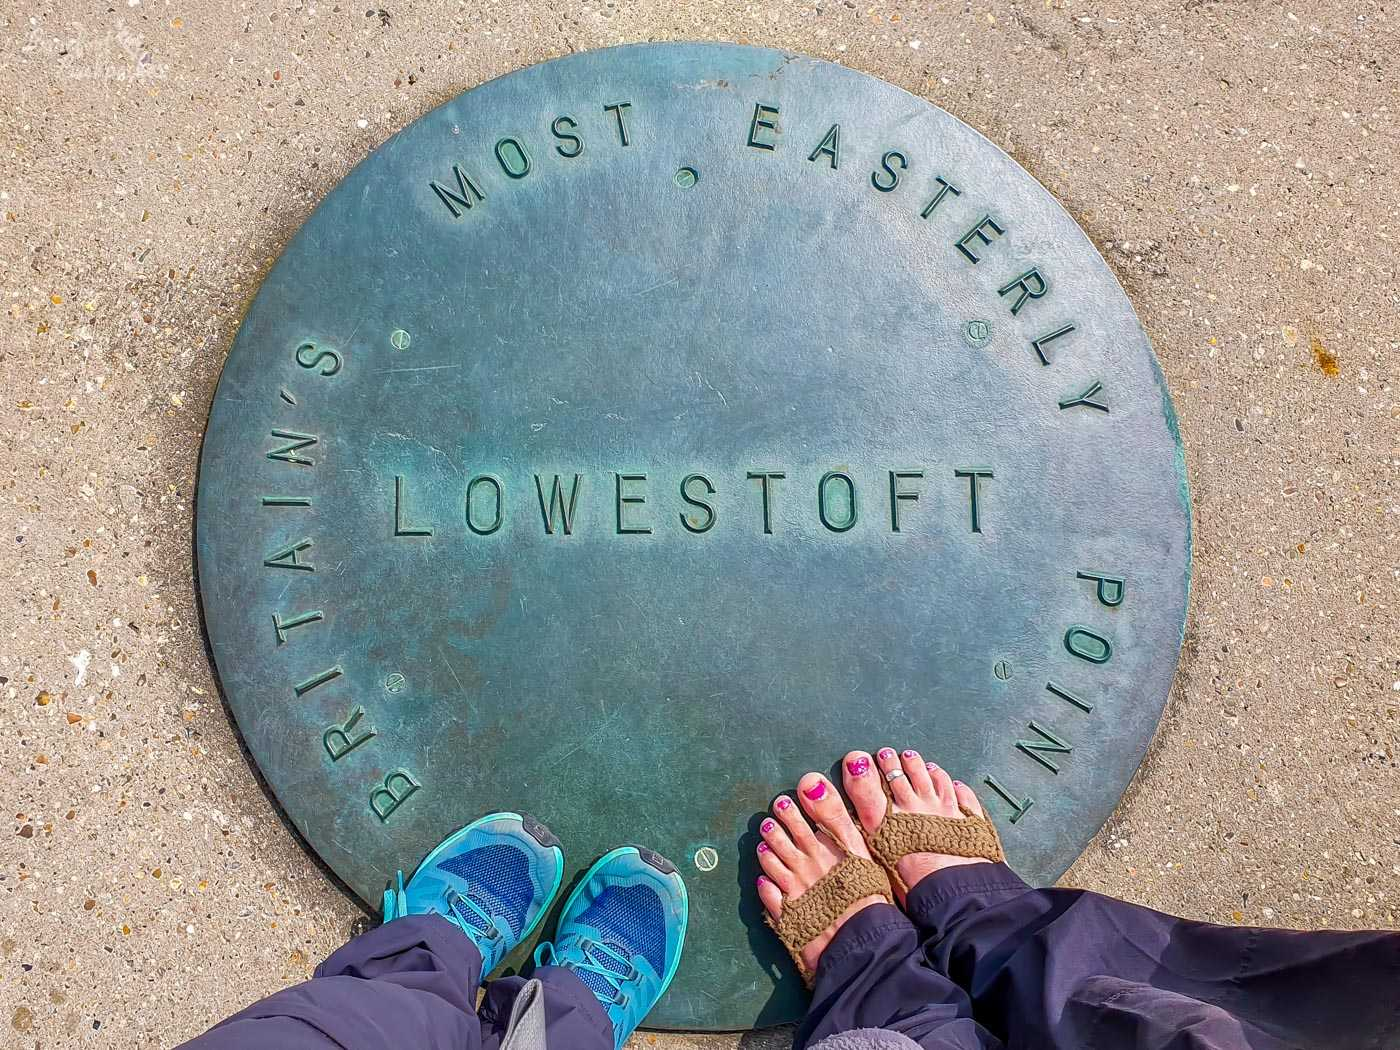 On the cement ground is a blue-grey metallic plaque that says 'Lowestoft. Britain's most easterly point'. Resting on the plaque are two pairs of feet - one in blue trainers, the other bare with brown crochet coverings and red toenails.